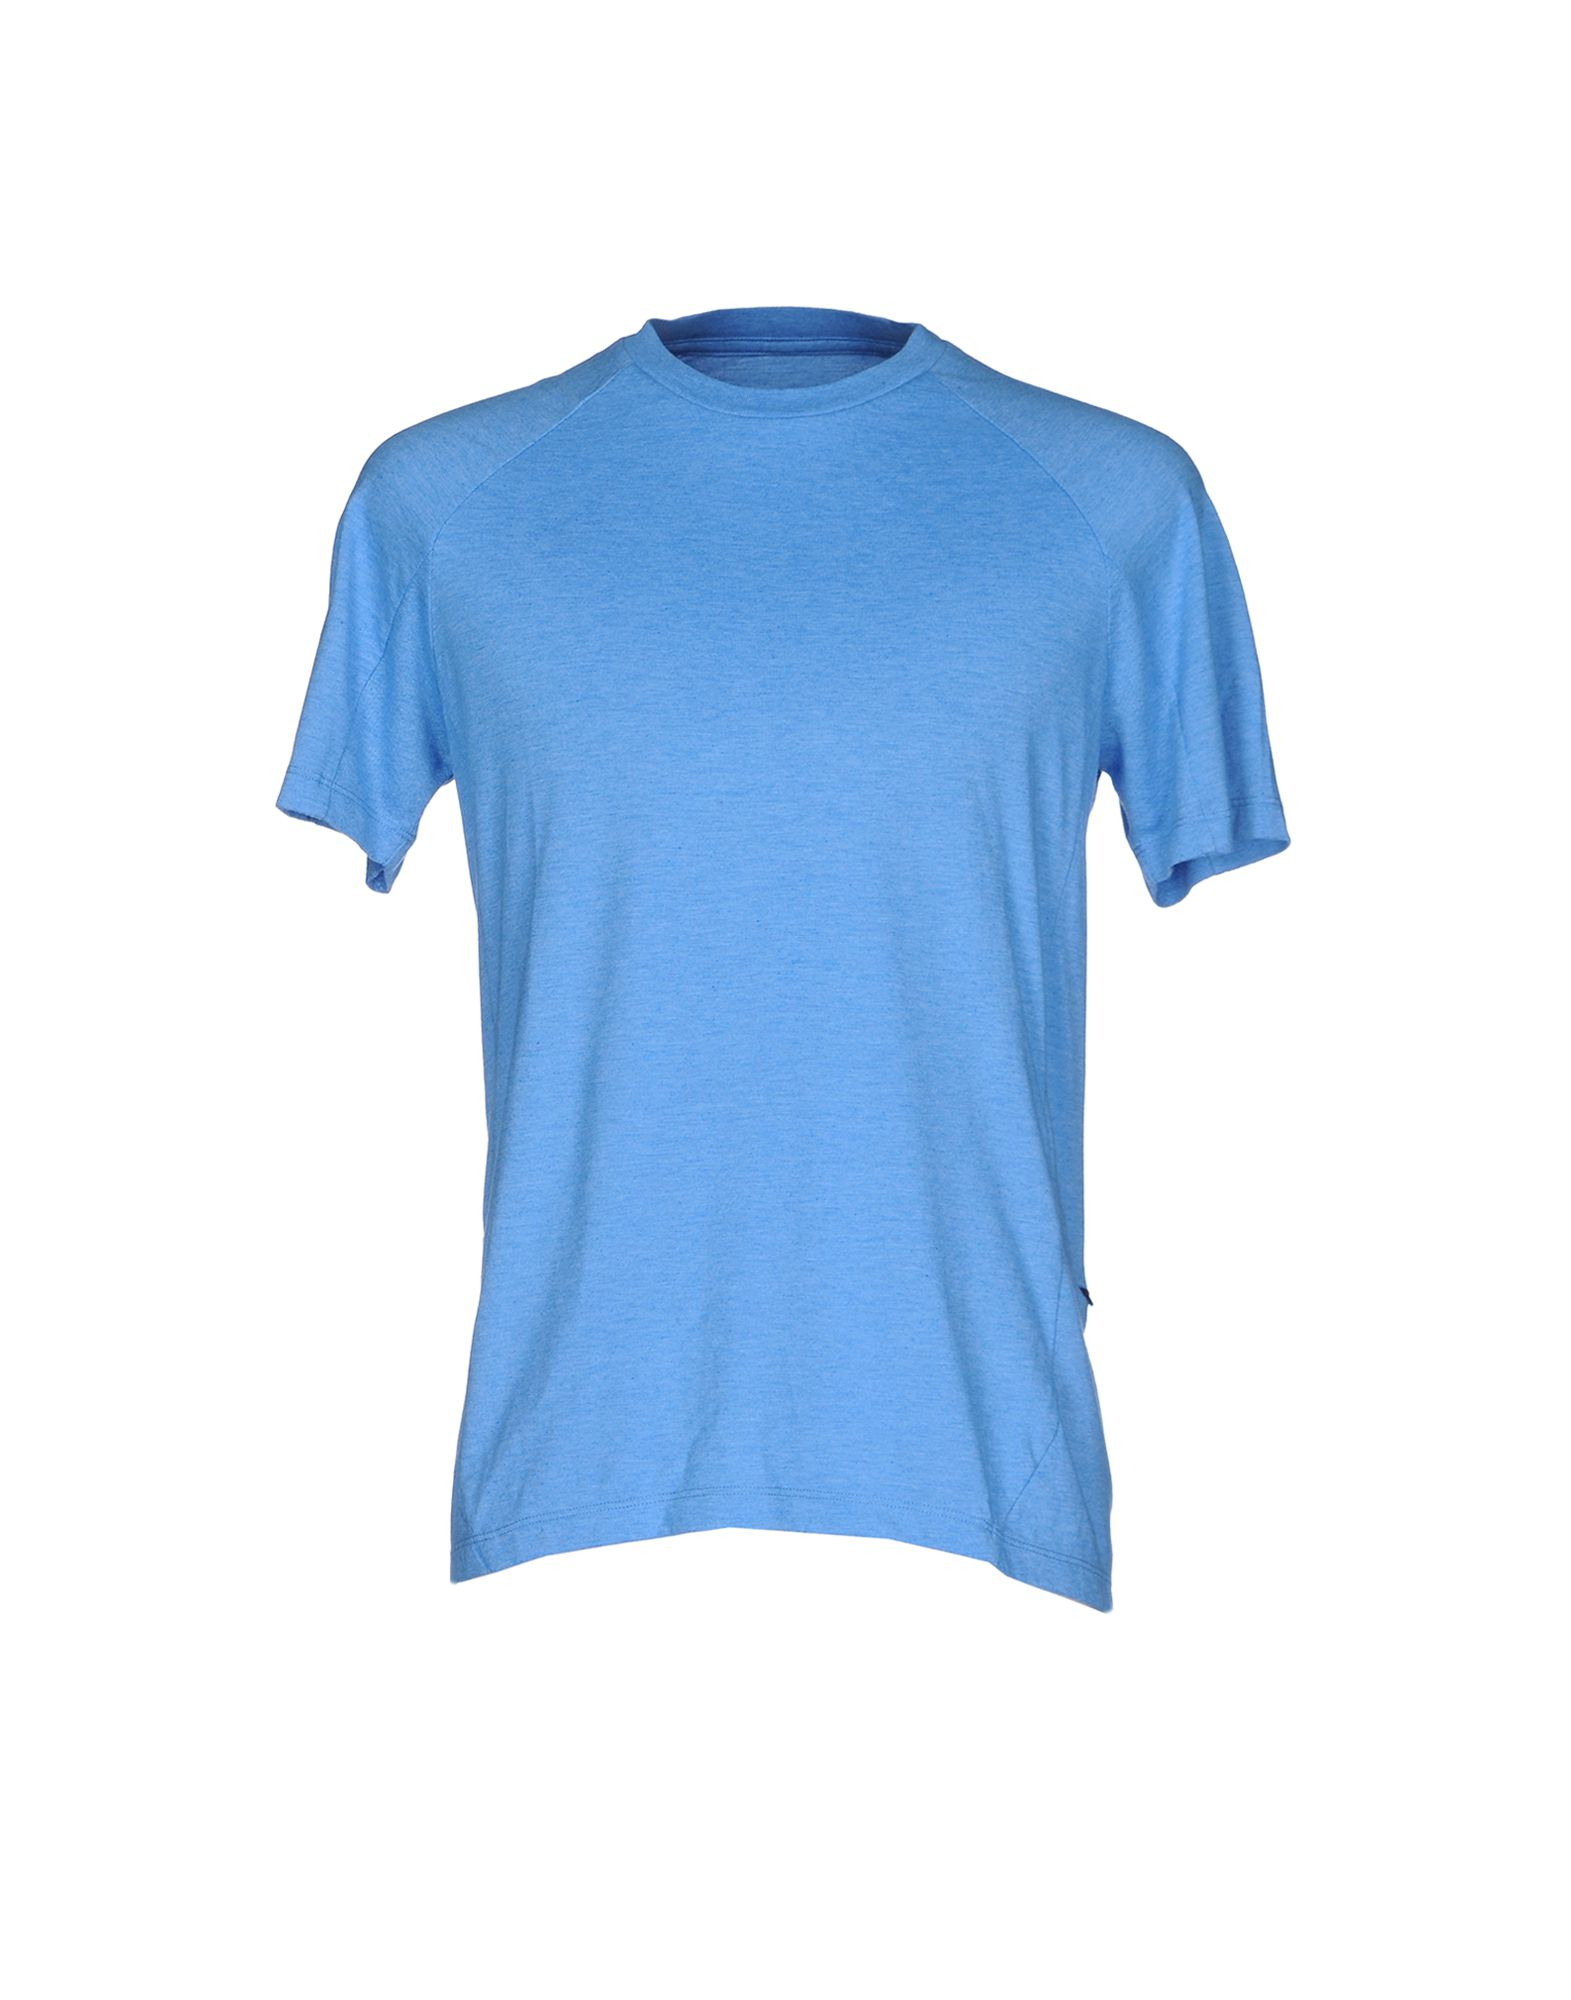 AETHER T-Shirt in Azure